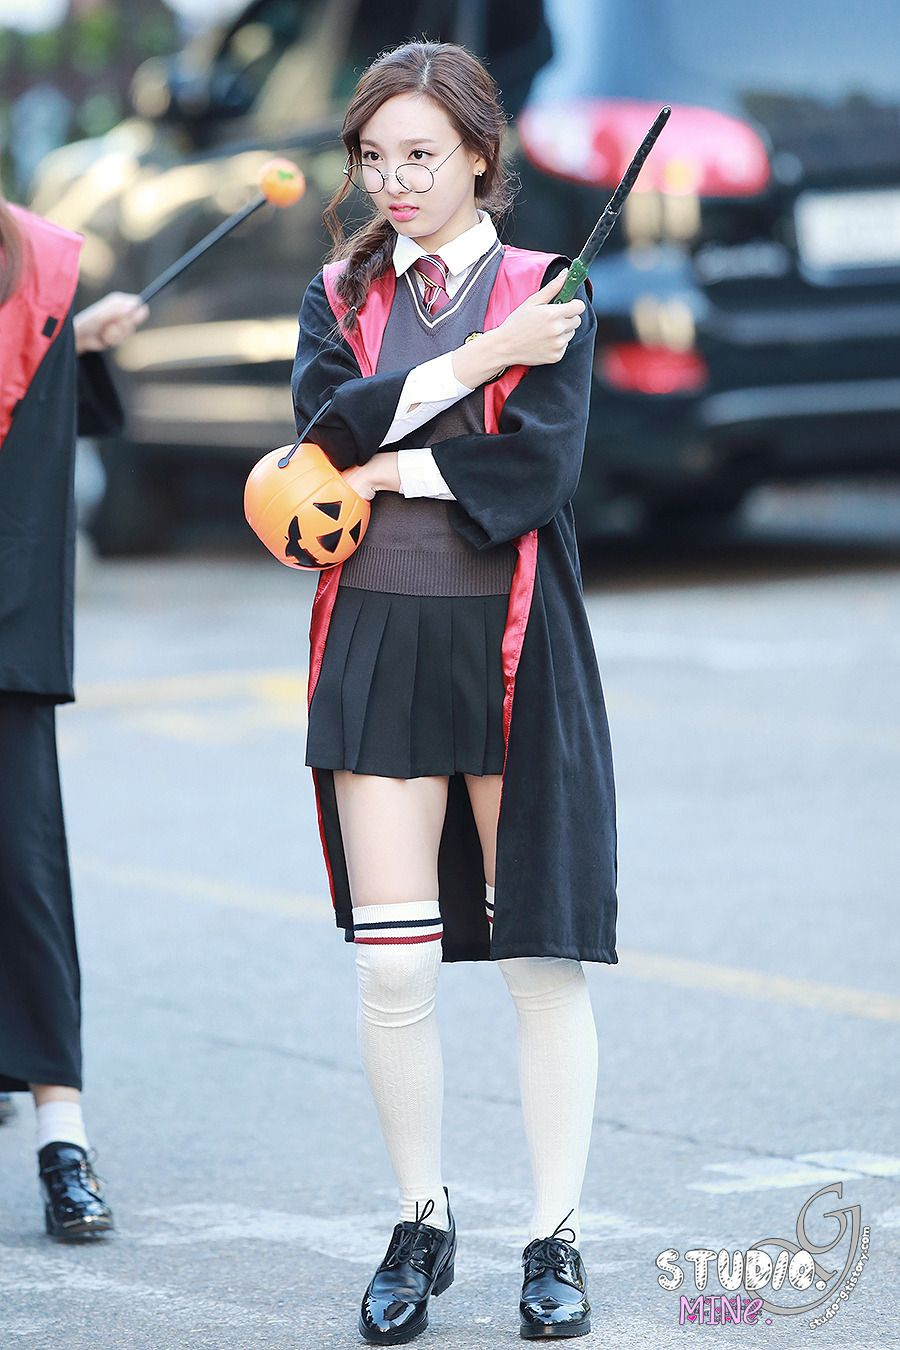 Twice S Nayeon Arrives At Music Bank In Harry Potter Cosplay Source Studio G Nayeon Harry Potter Girl Kpop Girls